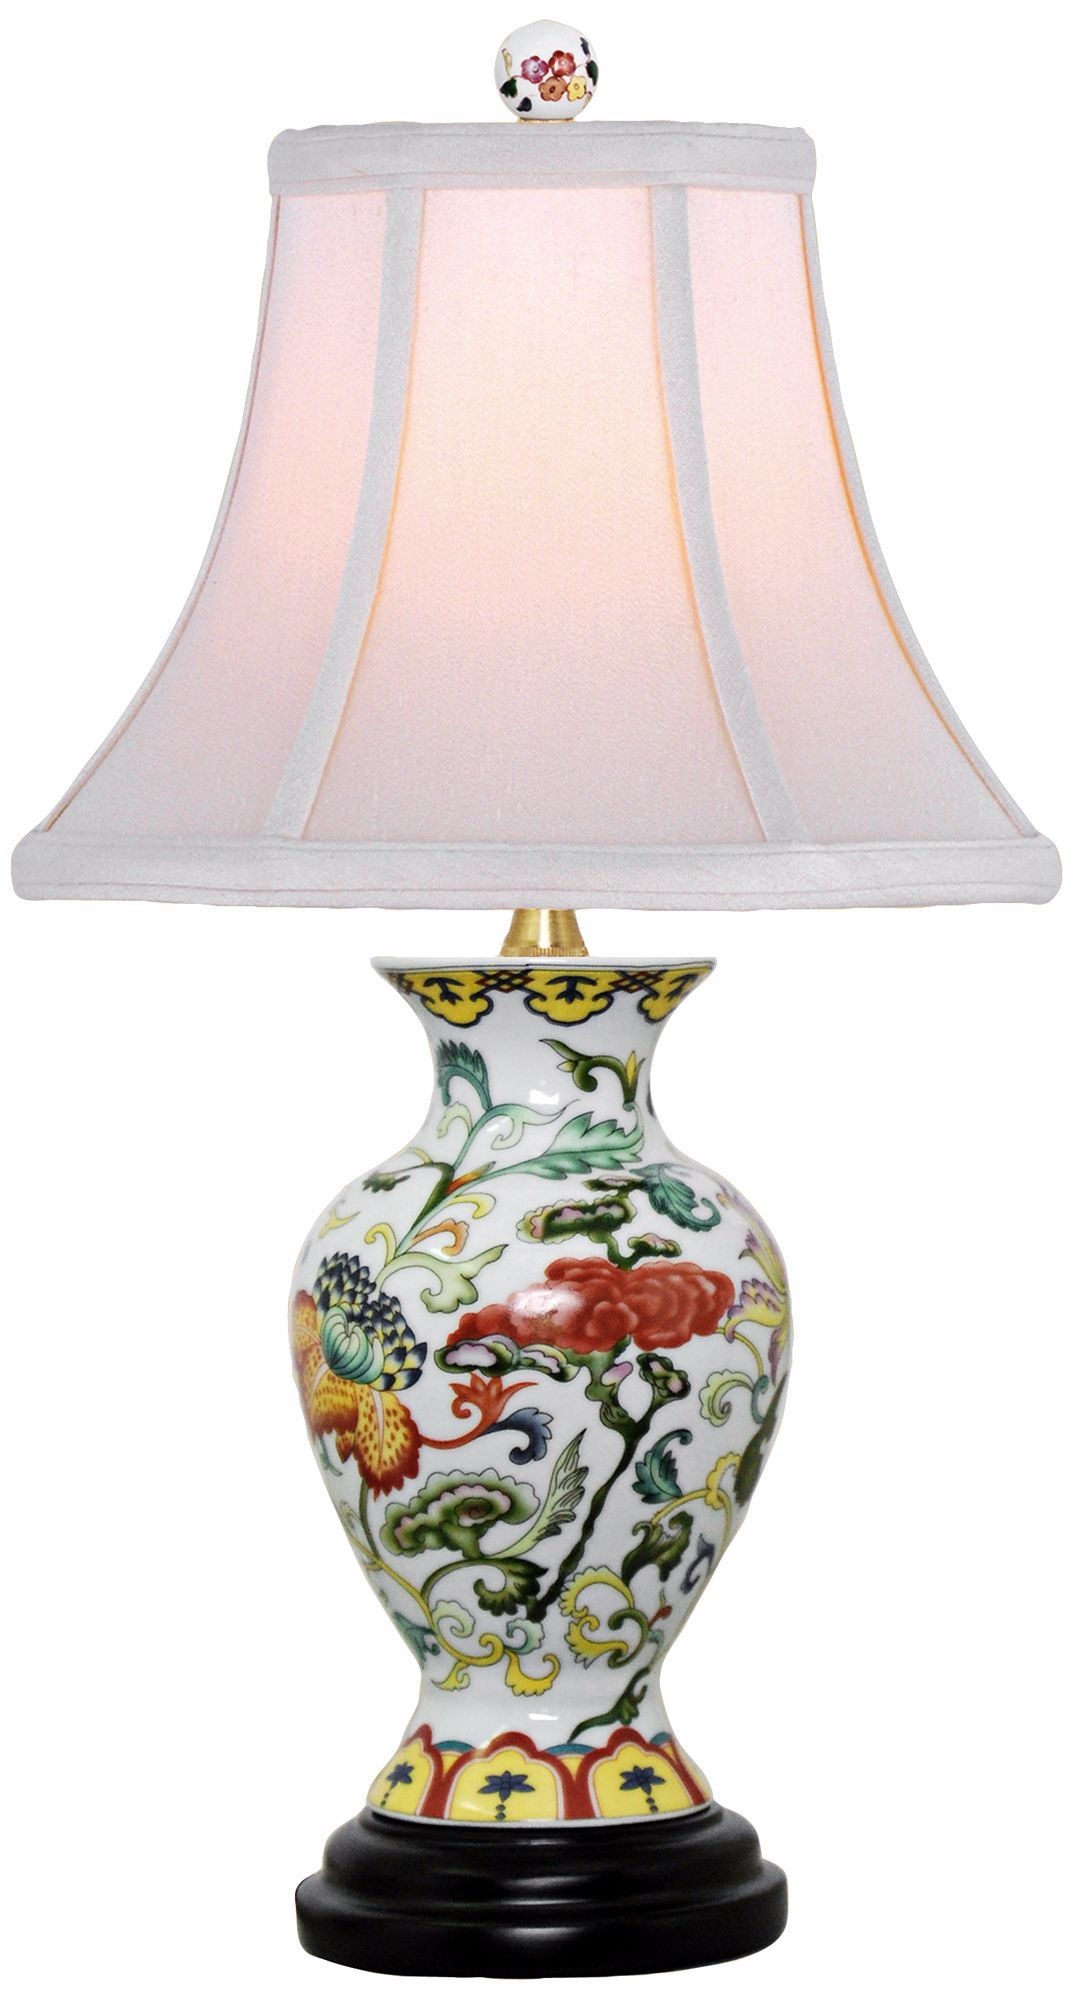 Scrolled Floral Urn Porcelain Table Lamp